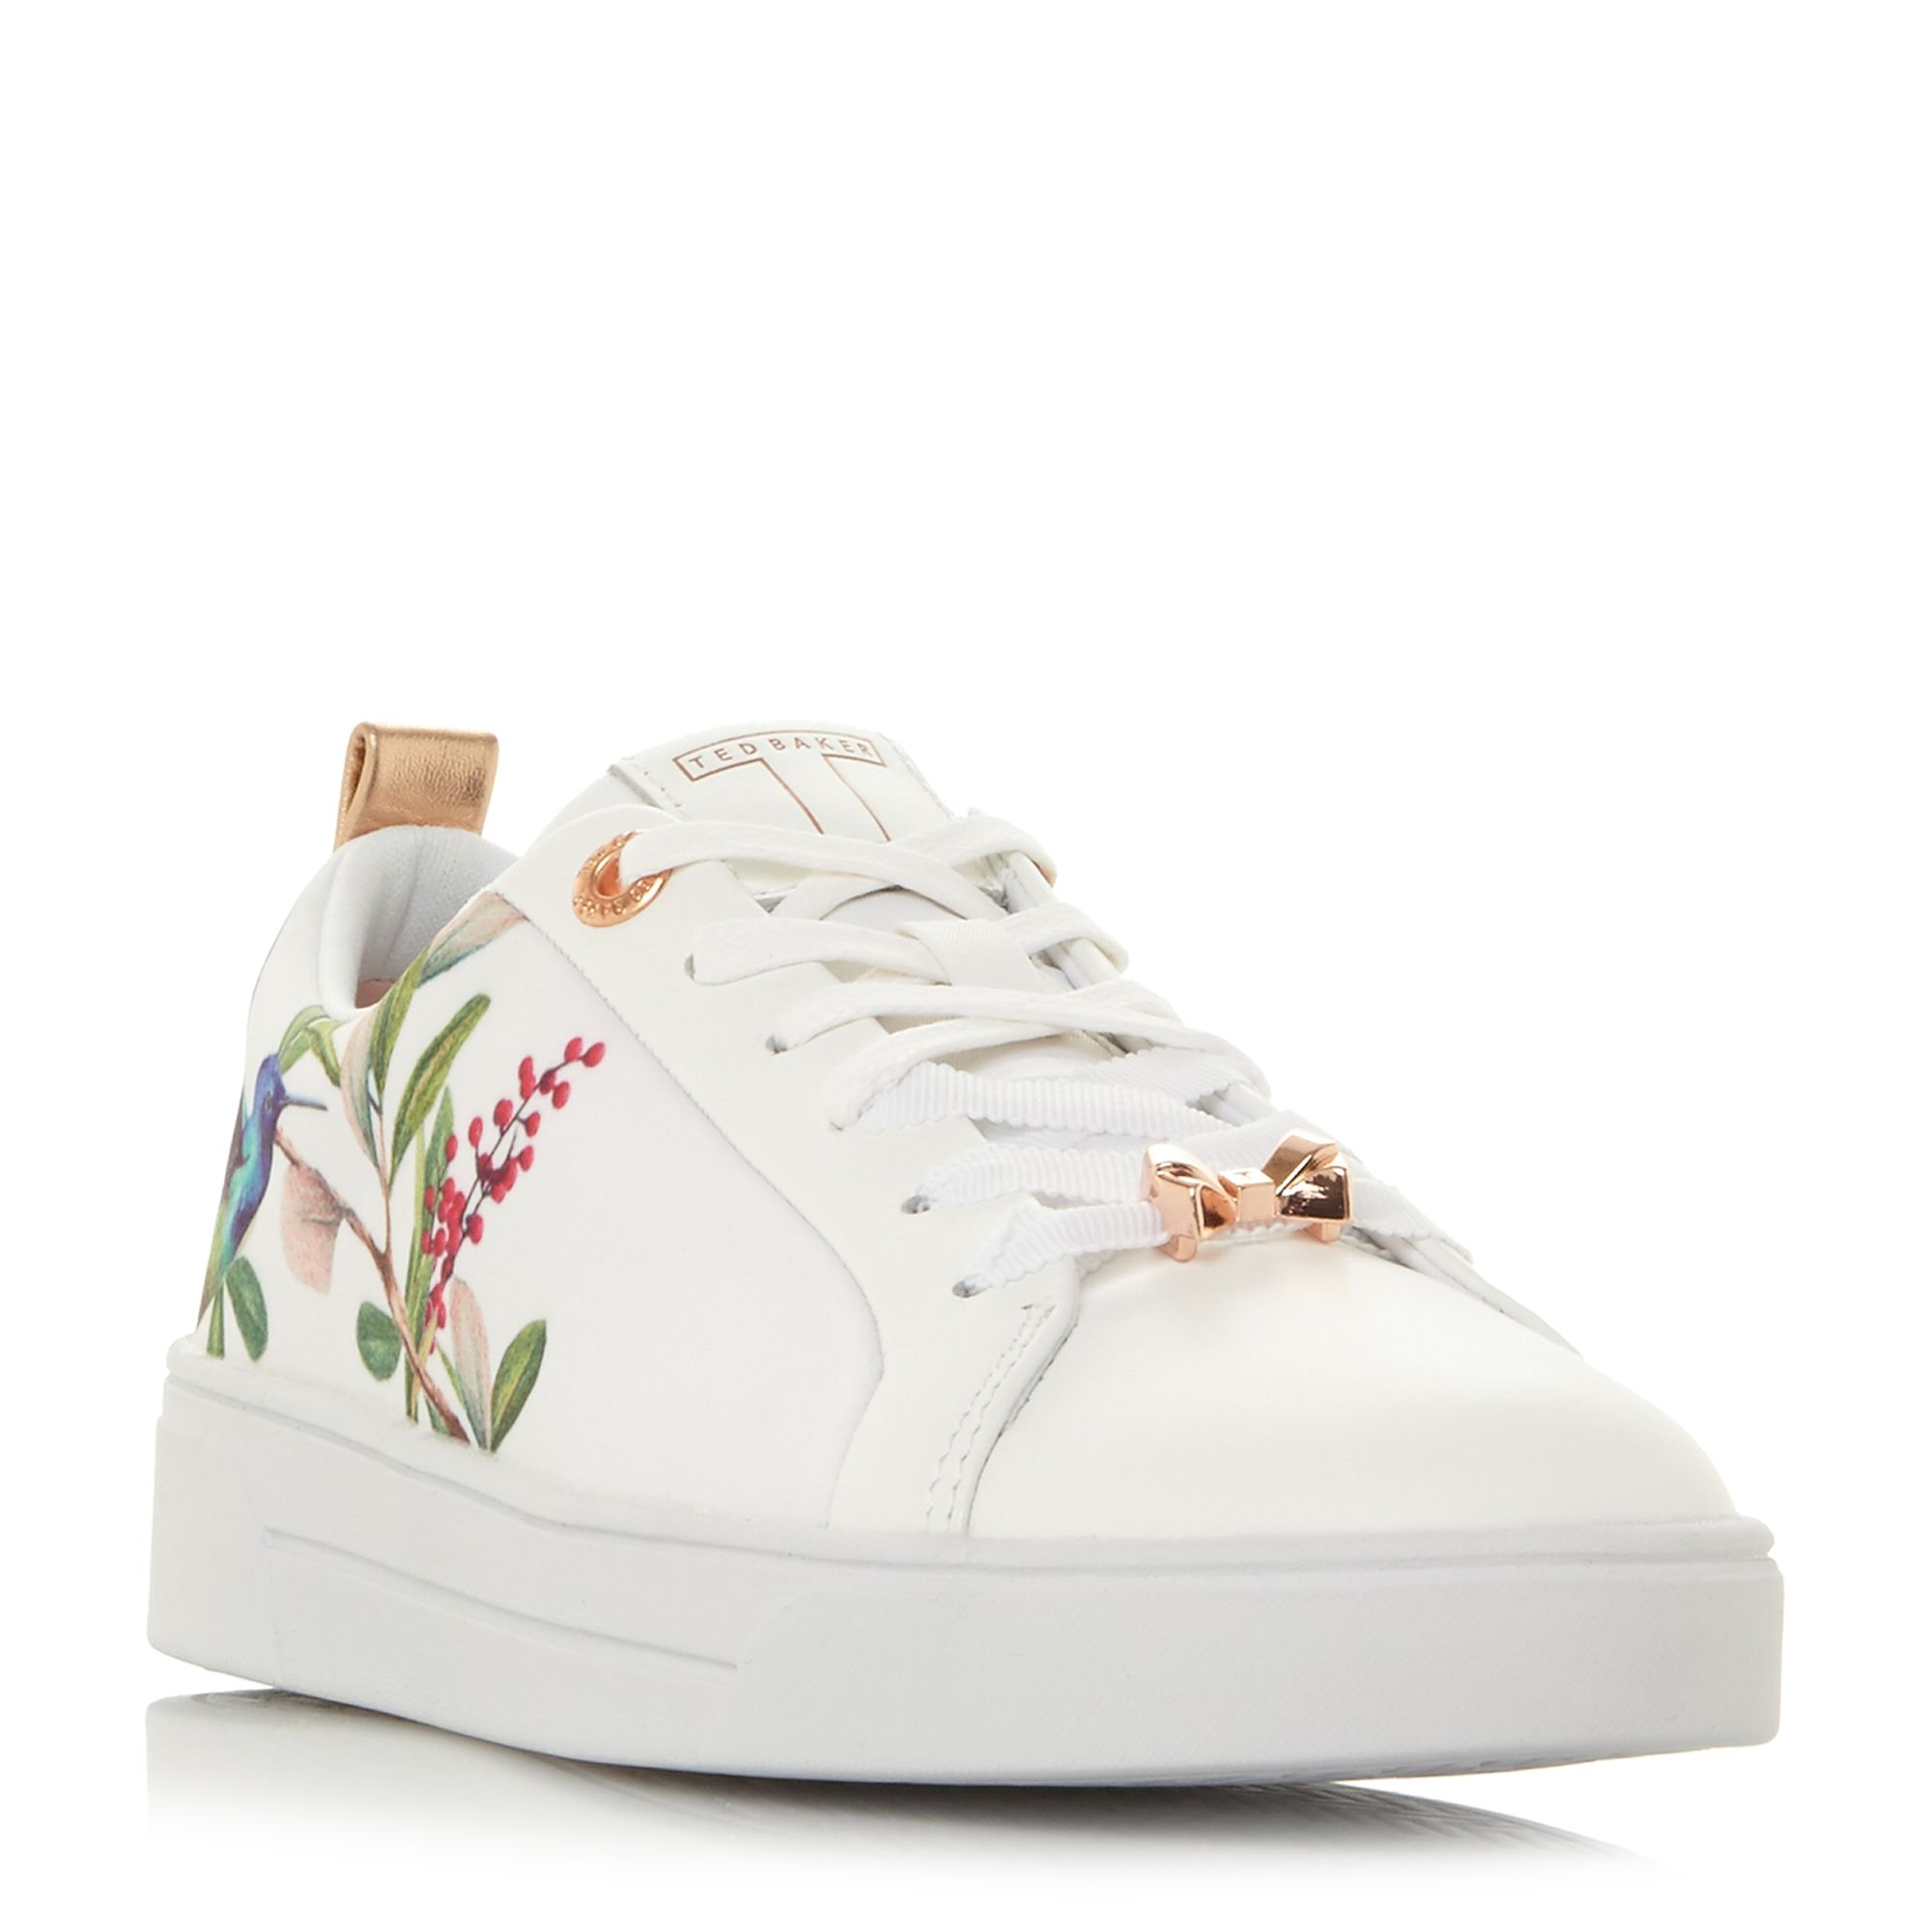 Ted Baker Ahfira Blossom Print Lace Up Trainers, Multi-Coloured